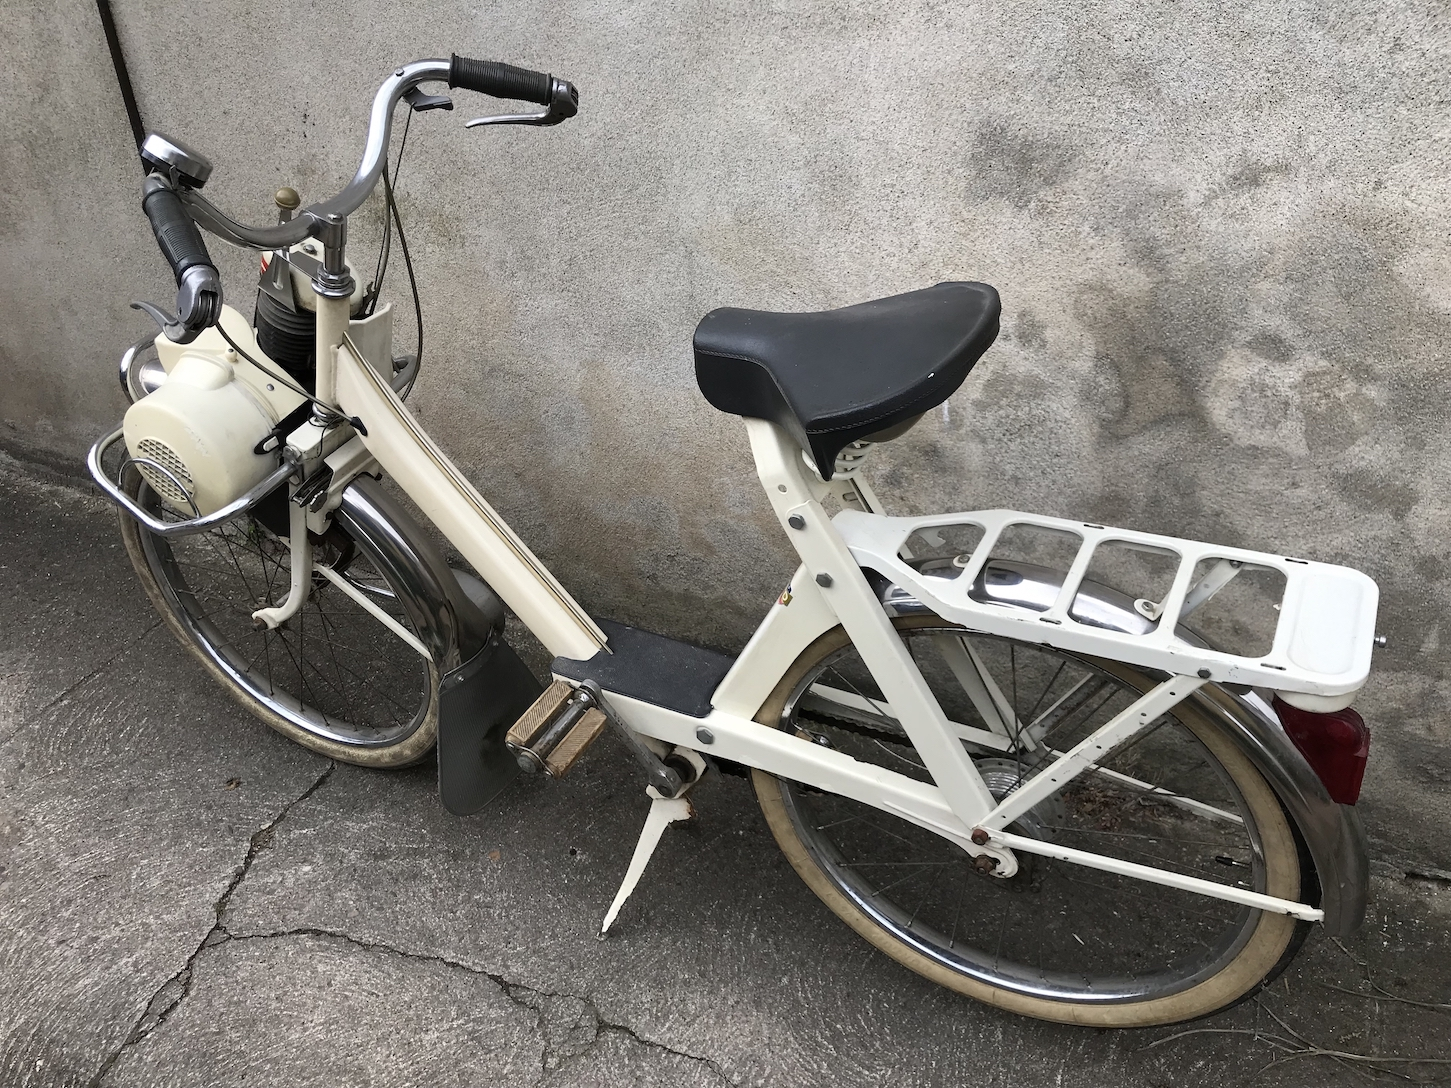 VELOSOLEX 3800 SUPERLUXE BLANC VELOCYCLO 4